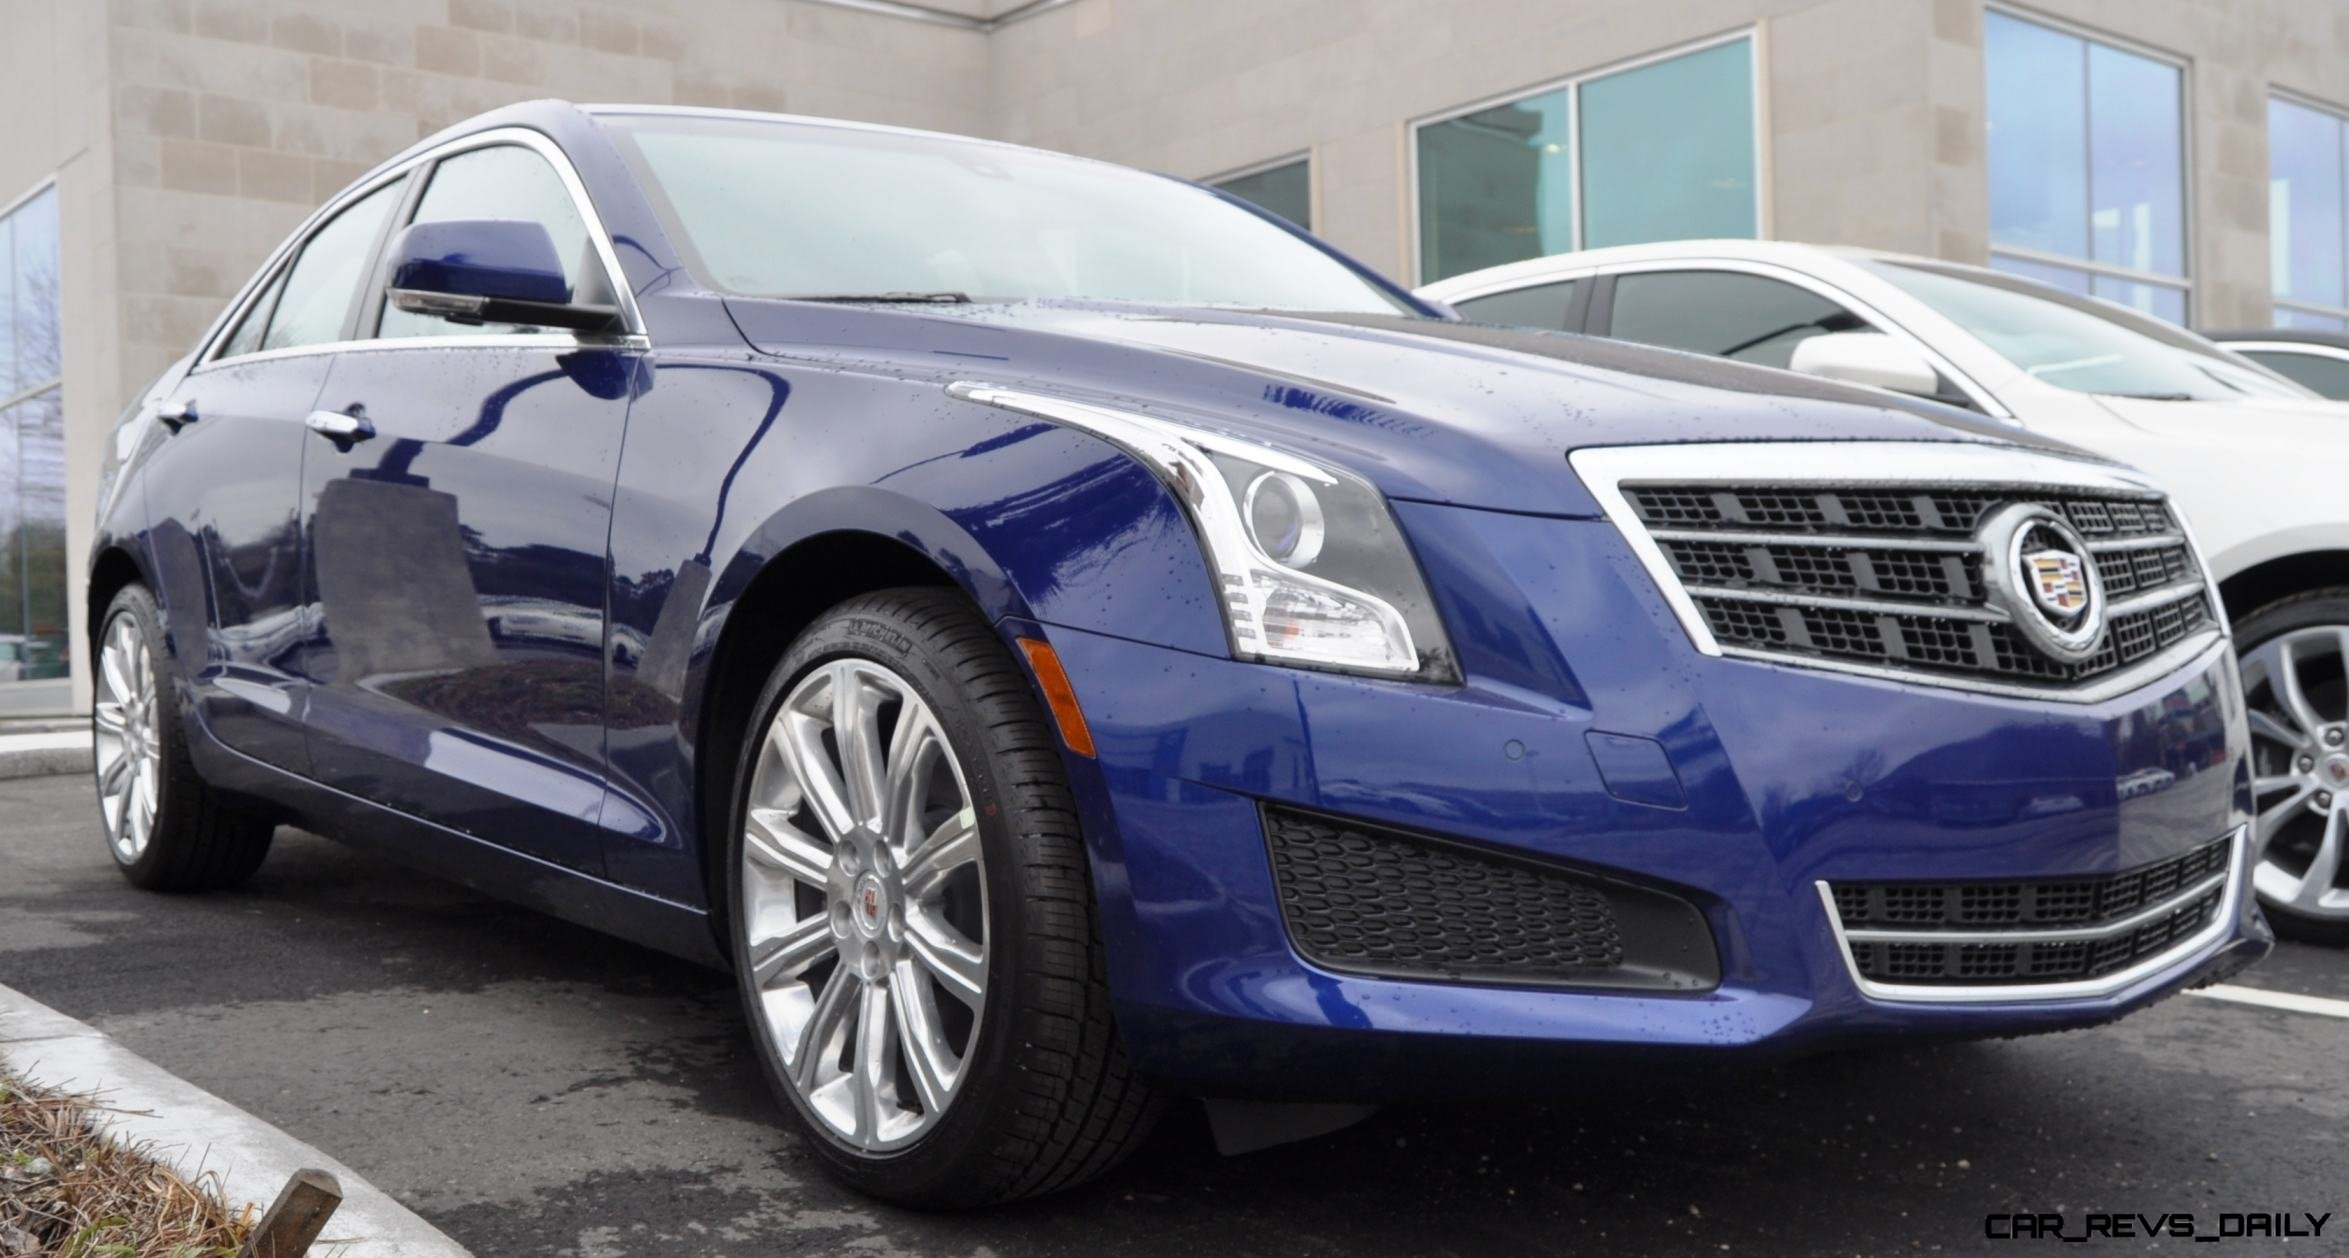 2014 Cadillac ATS 2.0T and CTS Vsport in High-Resolution Photos + Turntable Animation